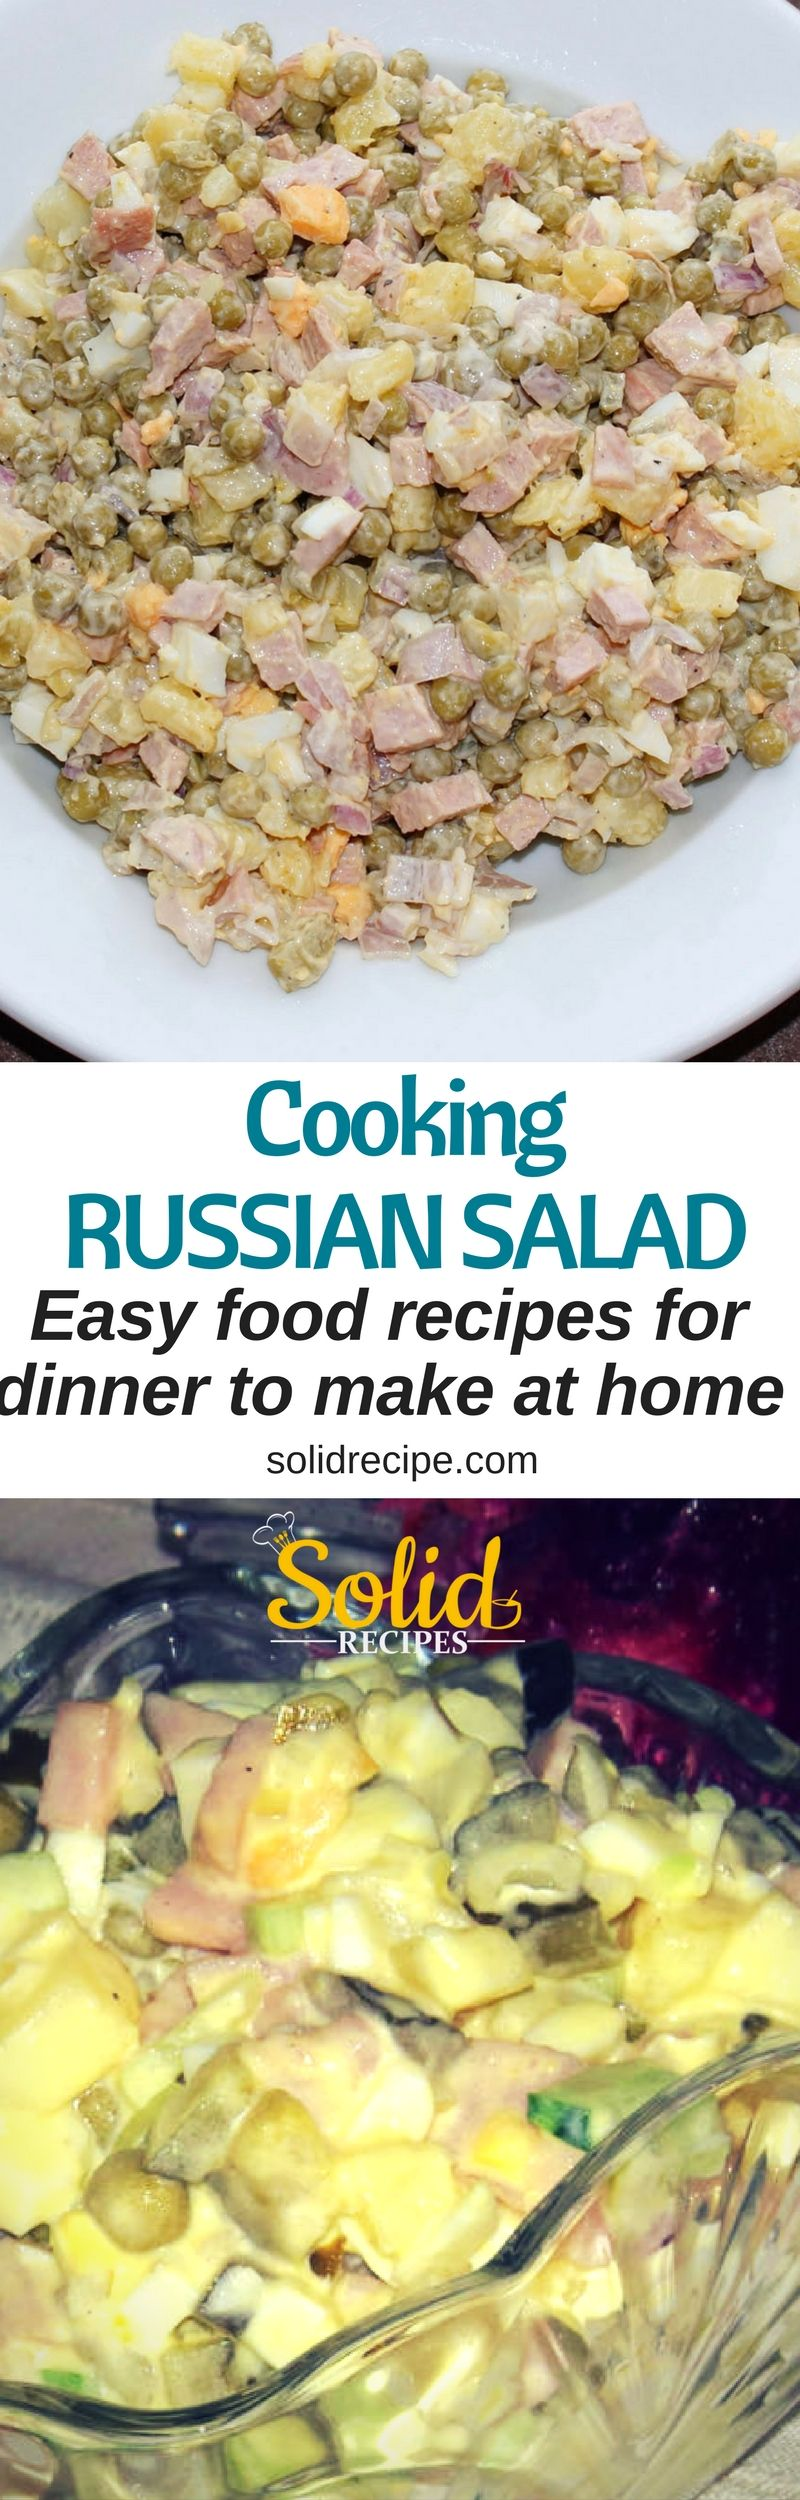 Cooking russian salad easy food recipes for dinner to make at home cooking russian salad easy food recipes for dinner to make at home not always the photos matched the recipe russian salad recipe russian salad dressing forumfinder Choice Image